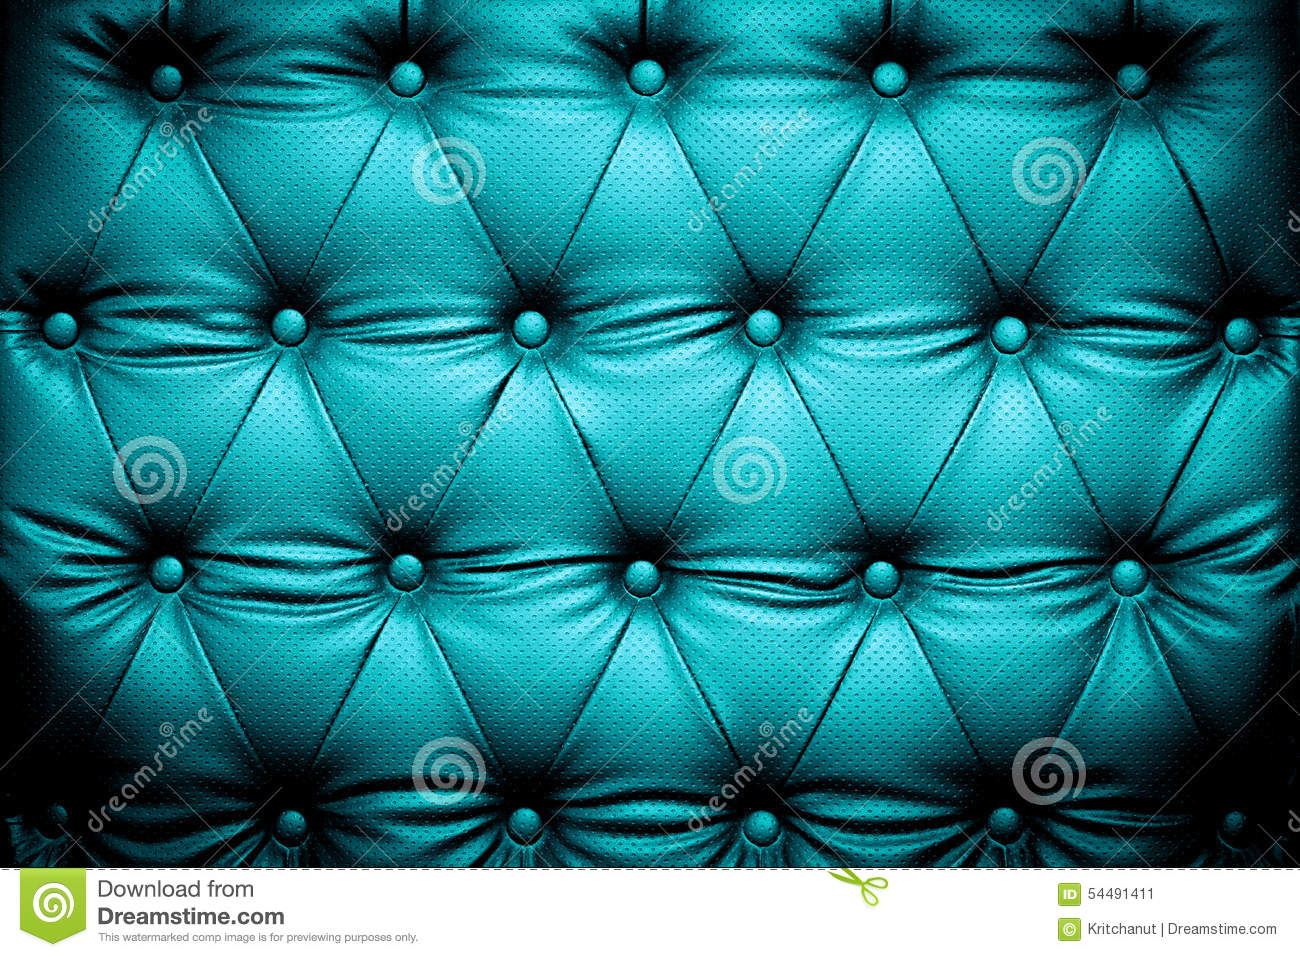 Dark Blue Turquoise Leather Texture With Buttoned Pattern